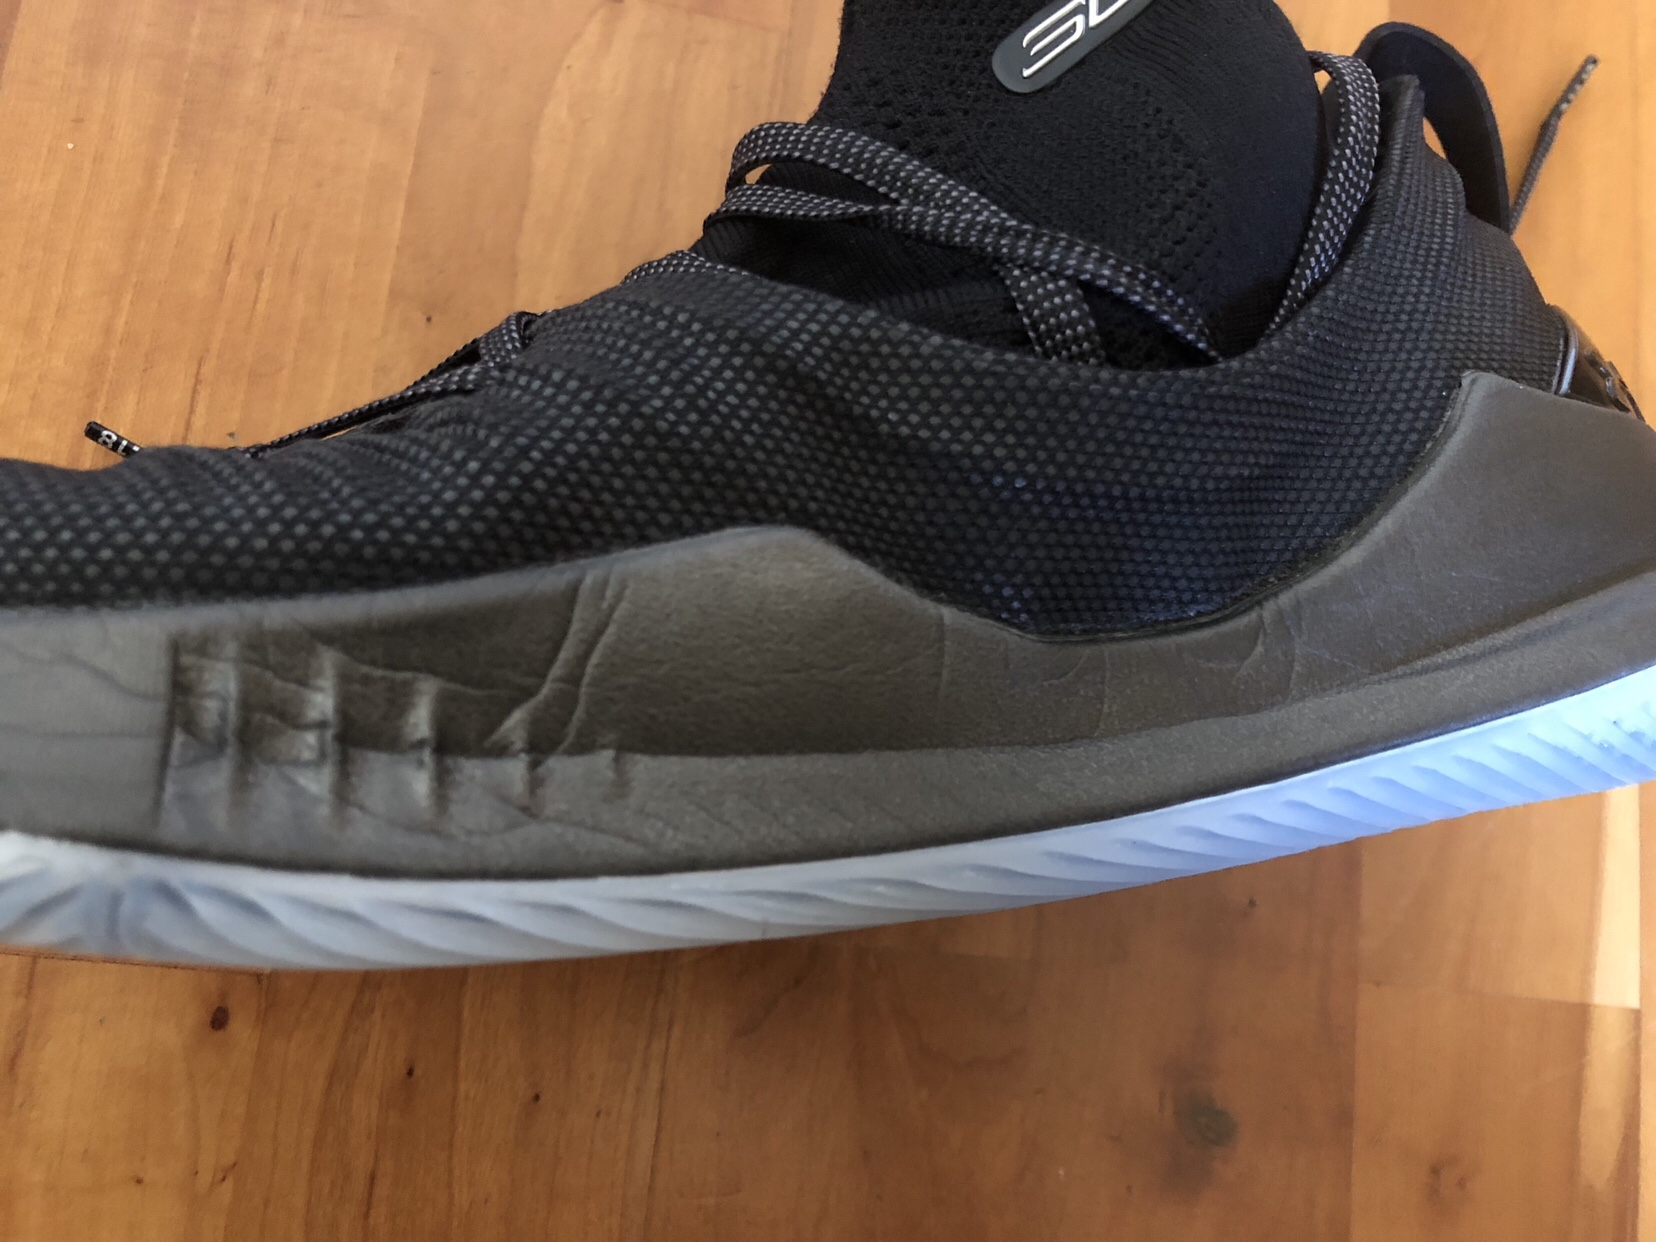 Under Armour Curry 5 Performance